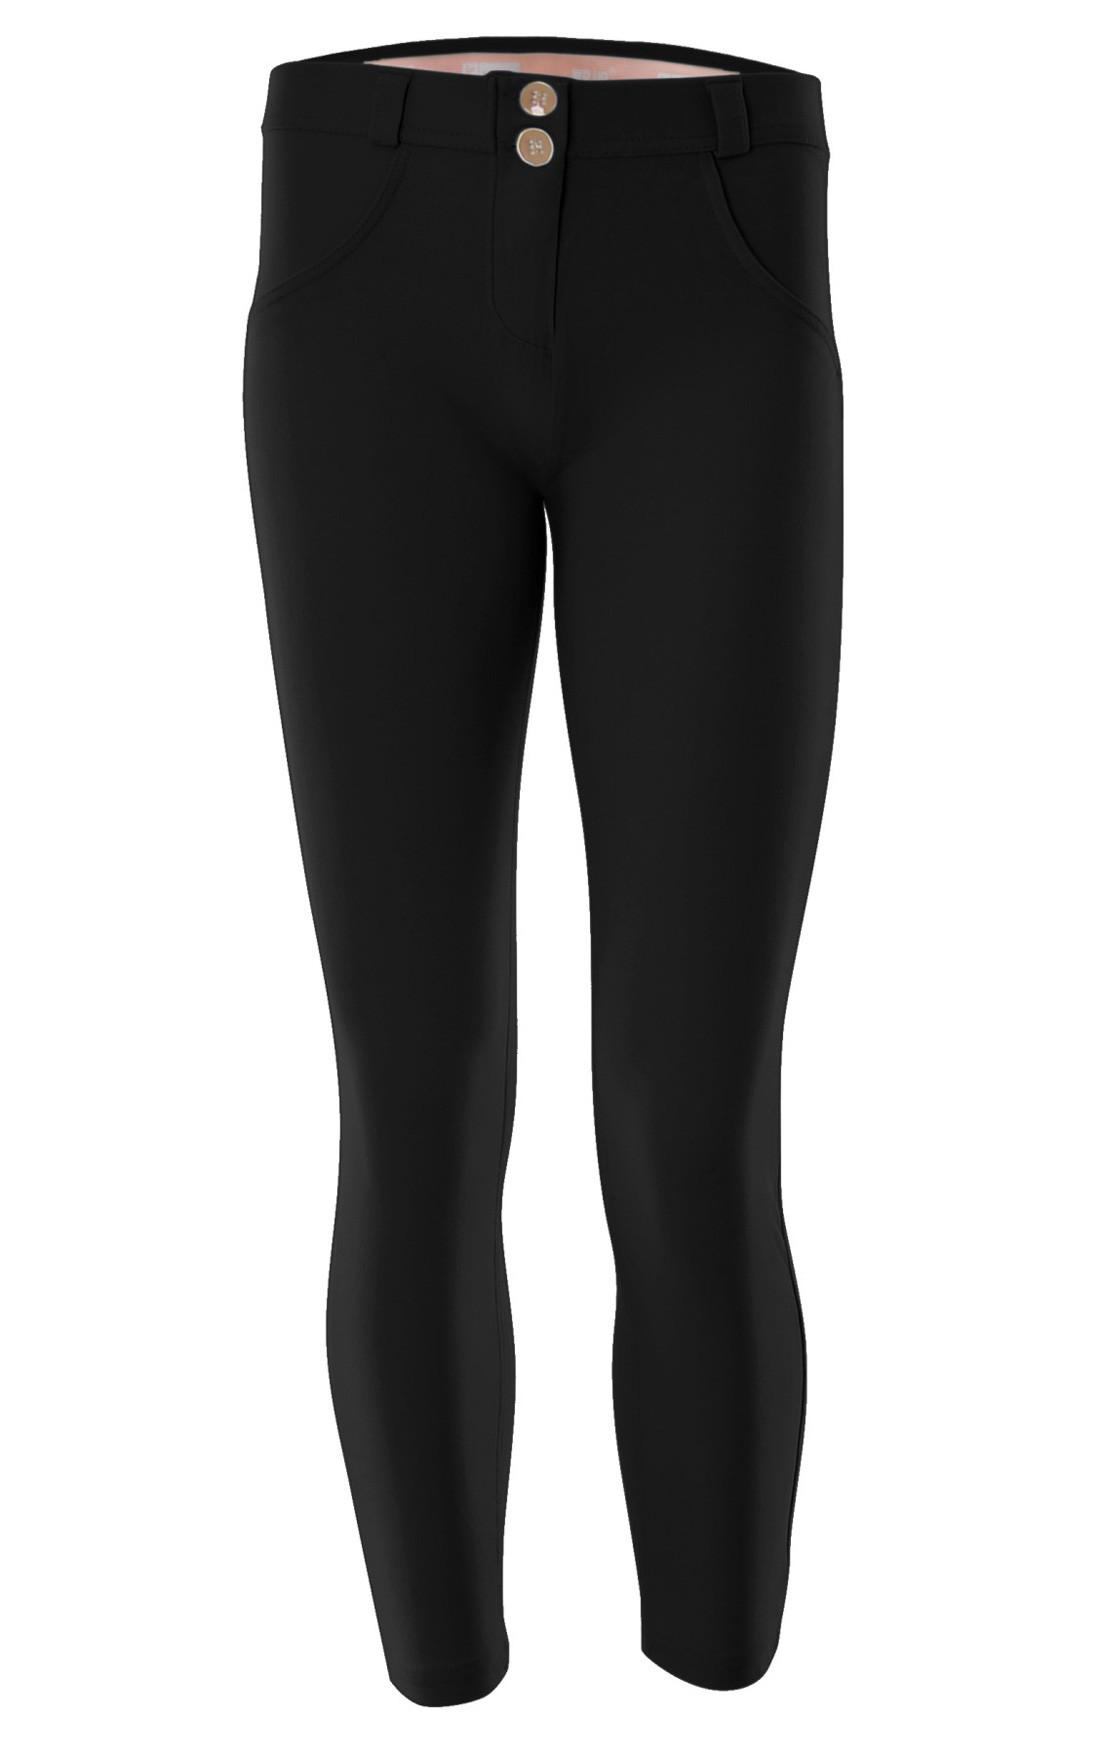 Freddy - Wr.Up® 7/8 Regular Rise Shaping Effect Jeggings (WRUP5RC01E_N)